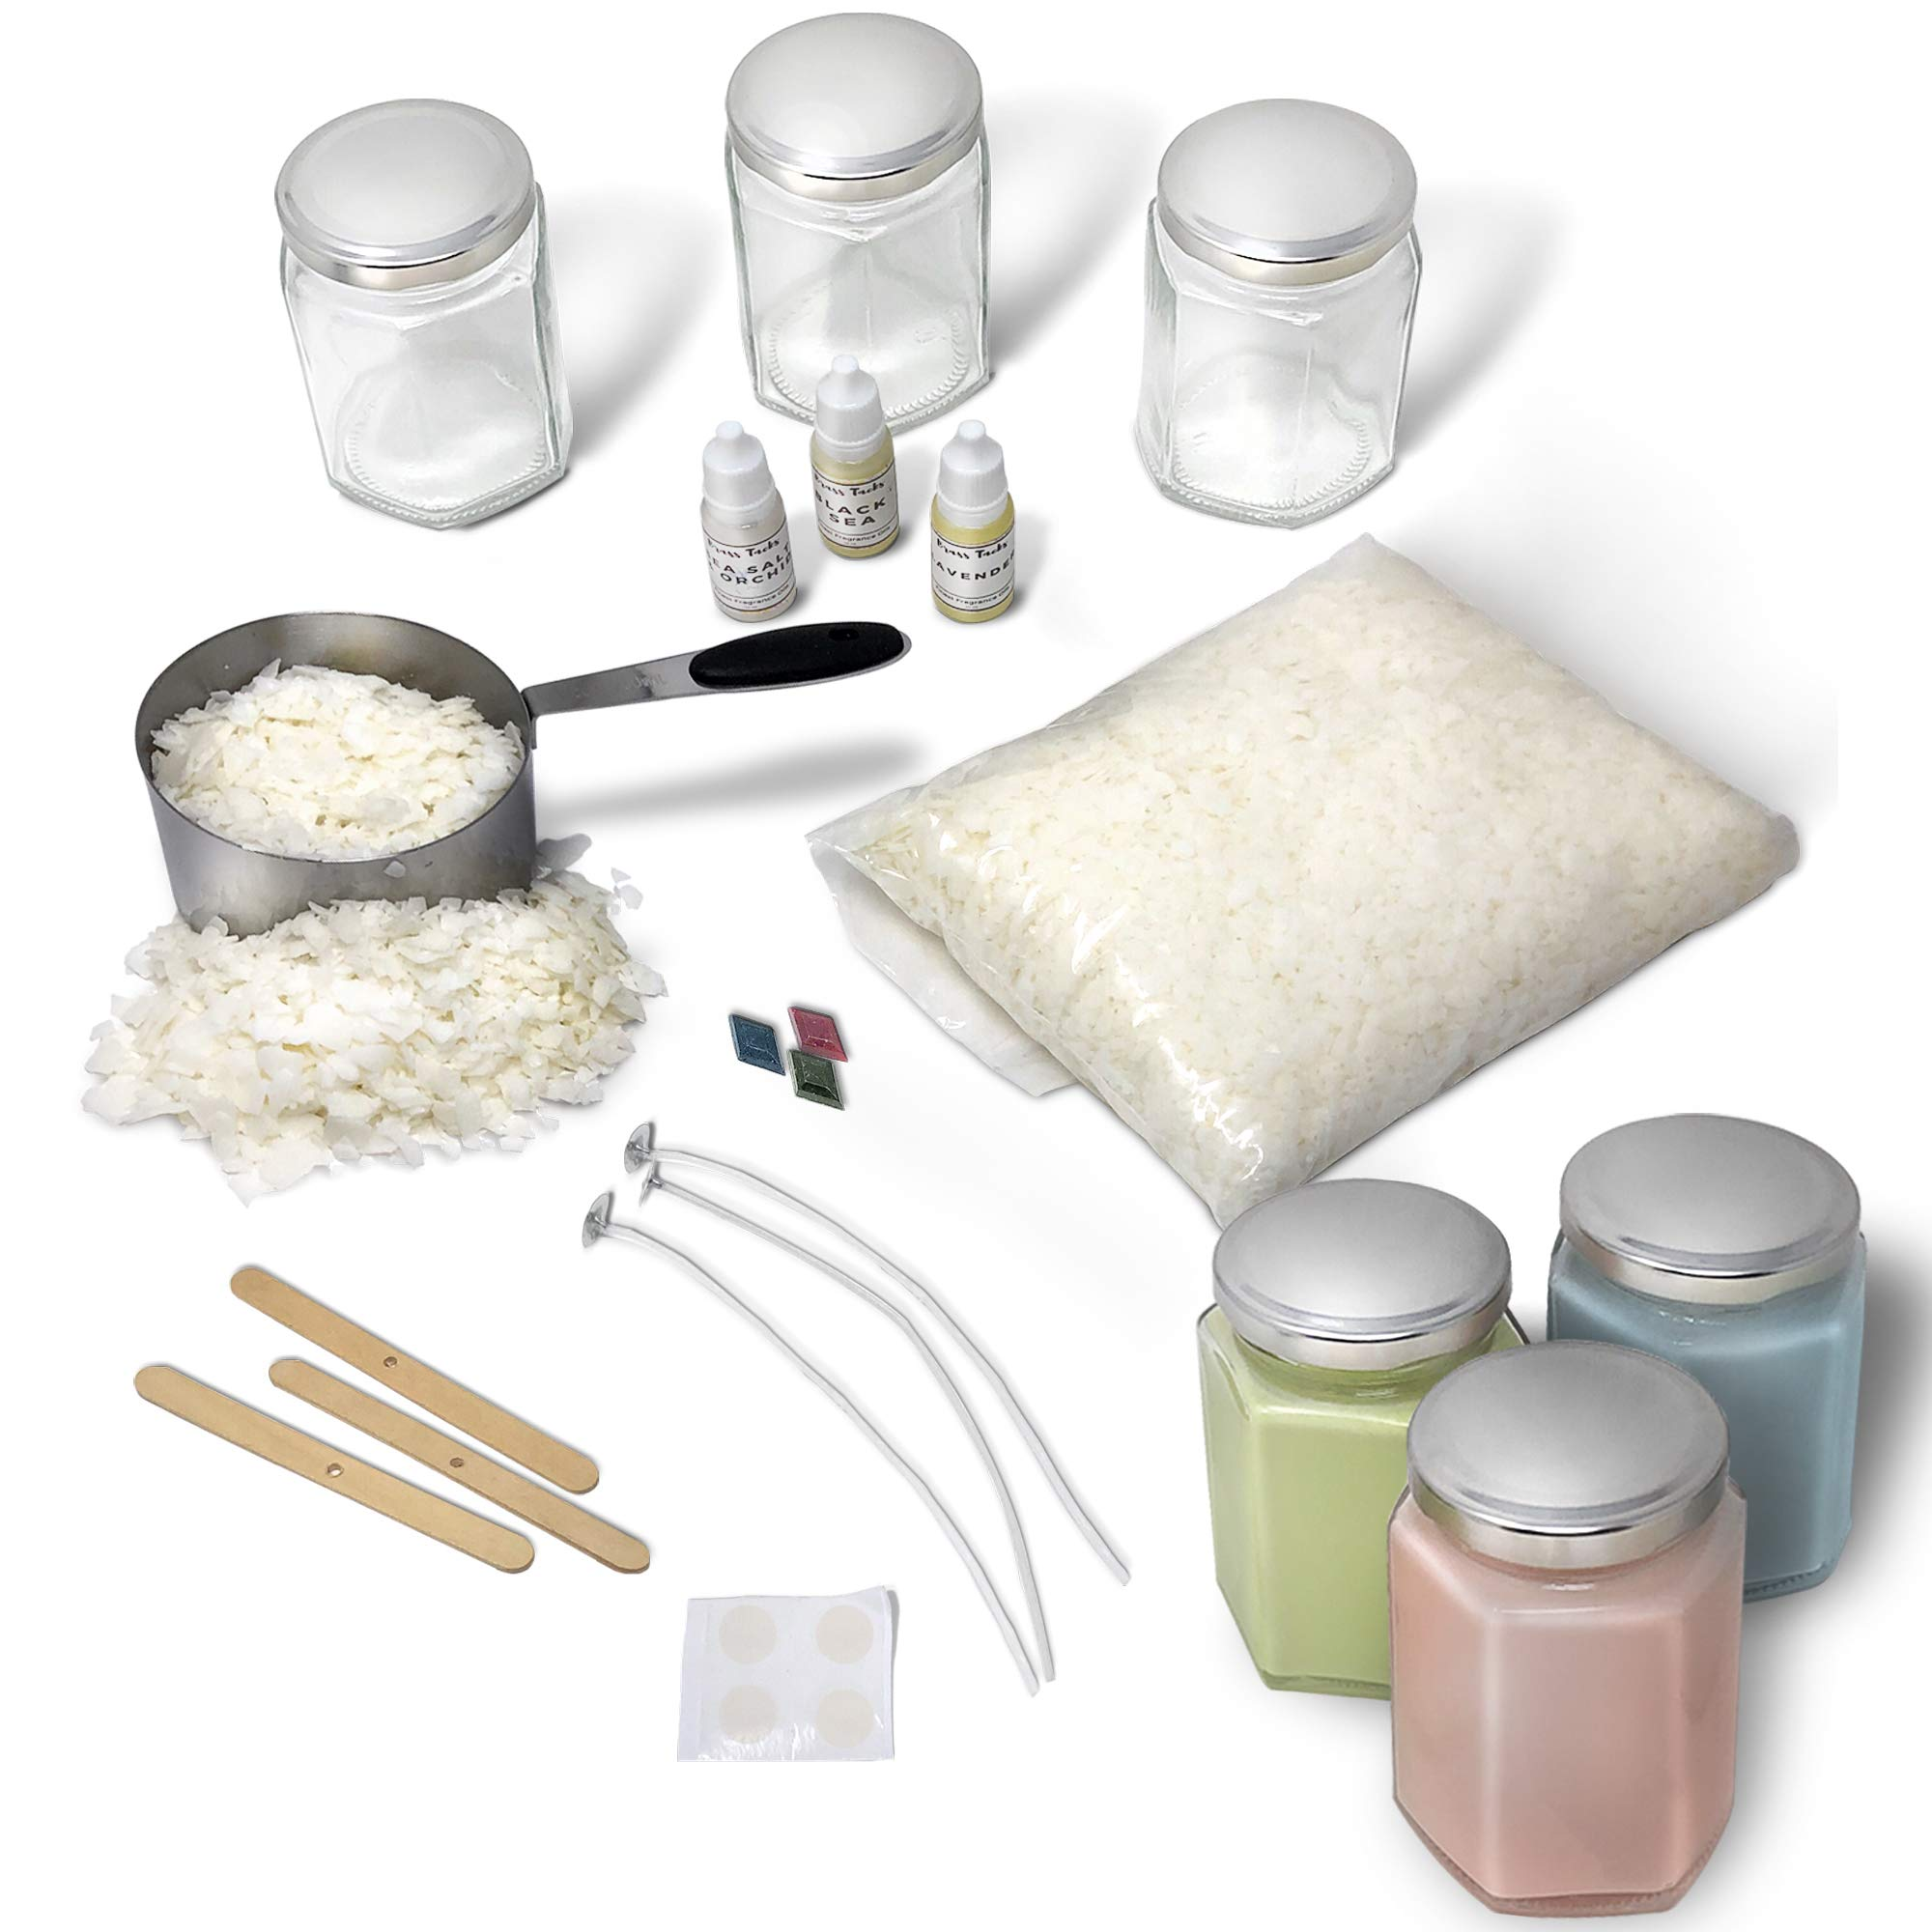 Complete Soy Wax Candle Making Kit DIY Beginners Set- Includes Supplies to Make 3 Candles Including Soy Wax, Premium Essential Oils, Hexagon Jars, Color Dye Chips, Wax Melting Pot and More. by Brass Tacks (Image #2)